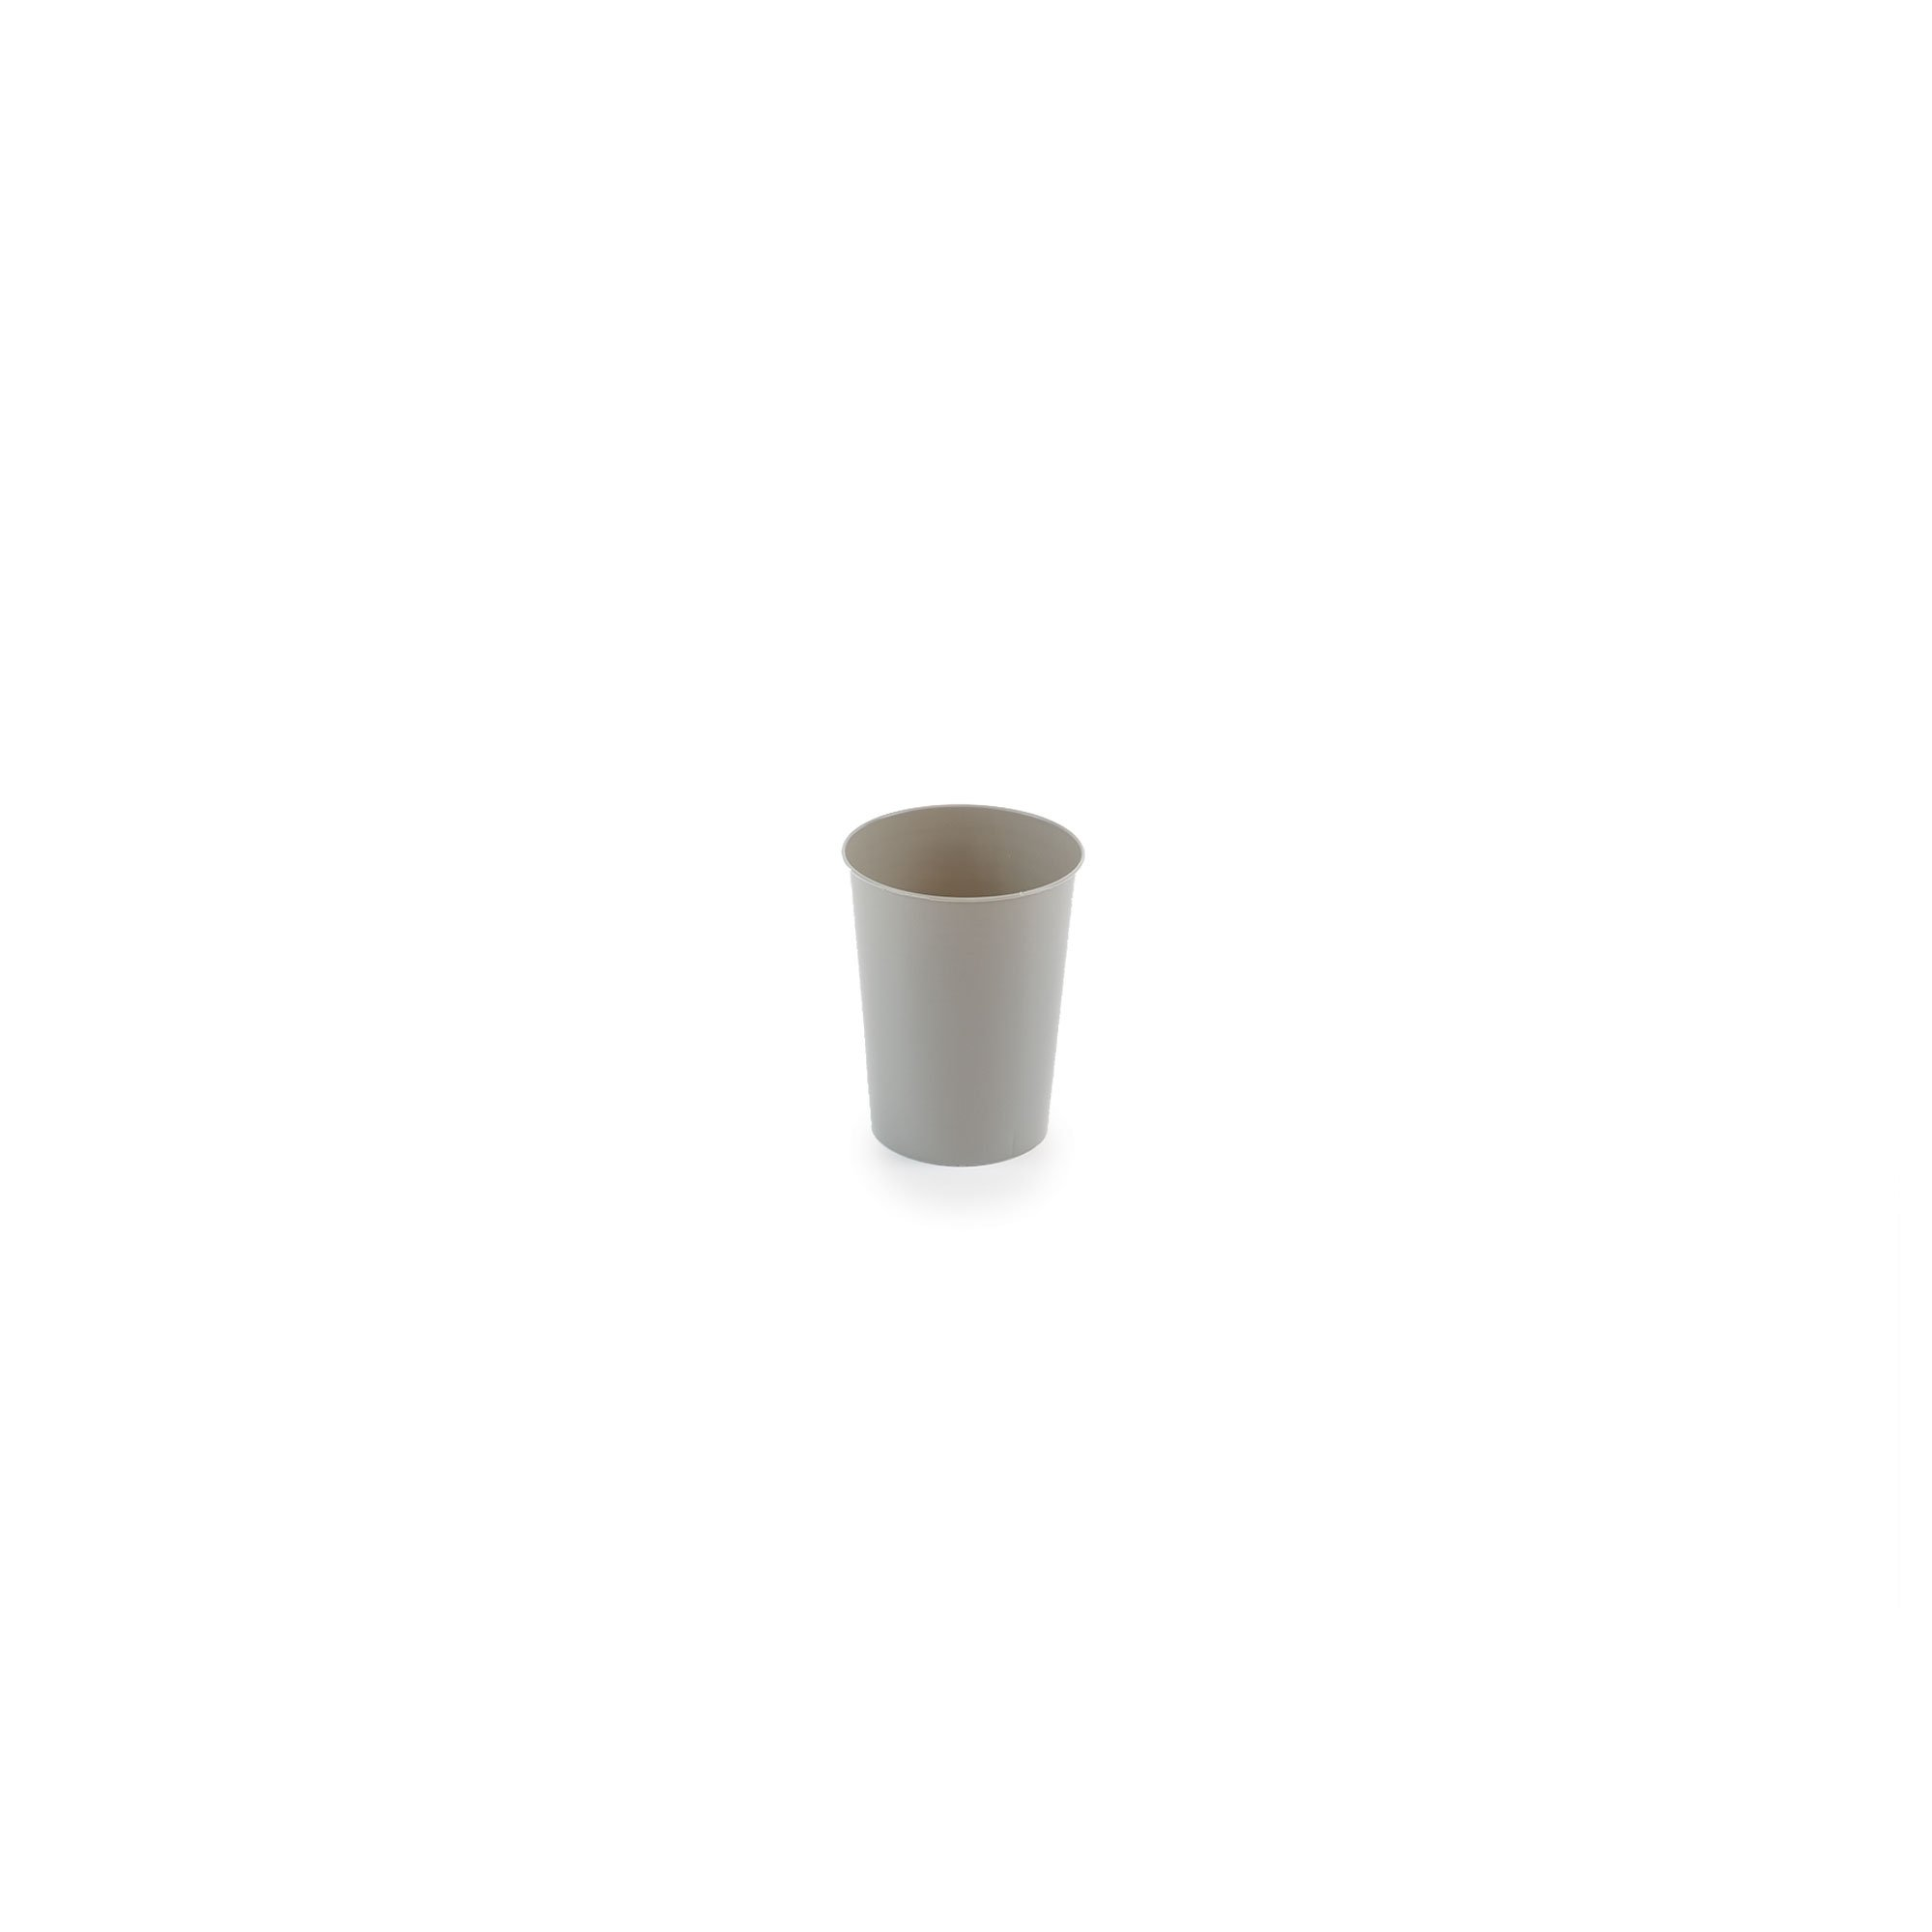 Medegen Medical Products H250-11 Tumbler, 9 oz. Capacity, Gray (Pack of 500)